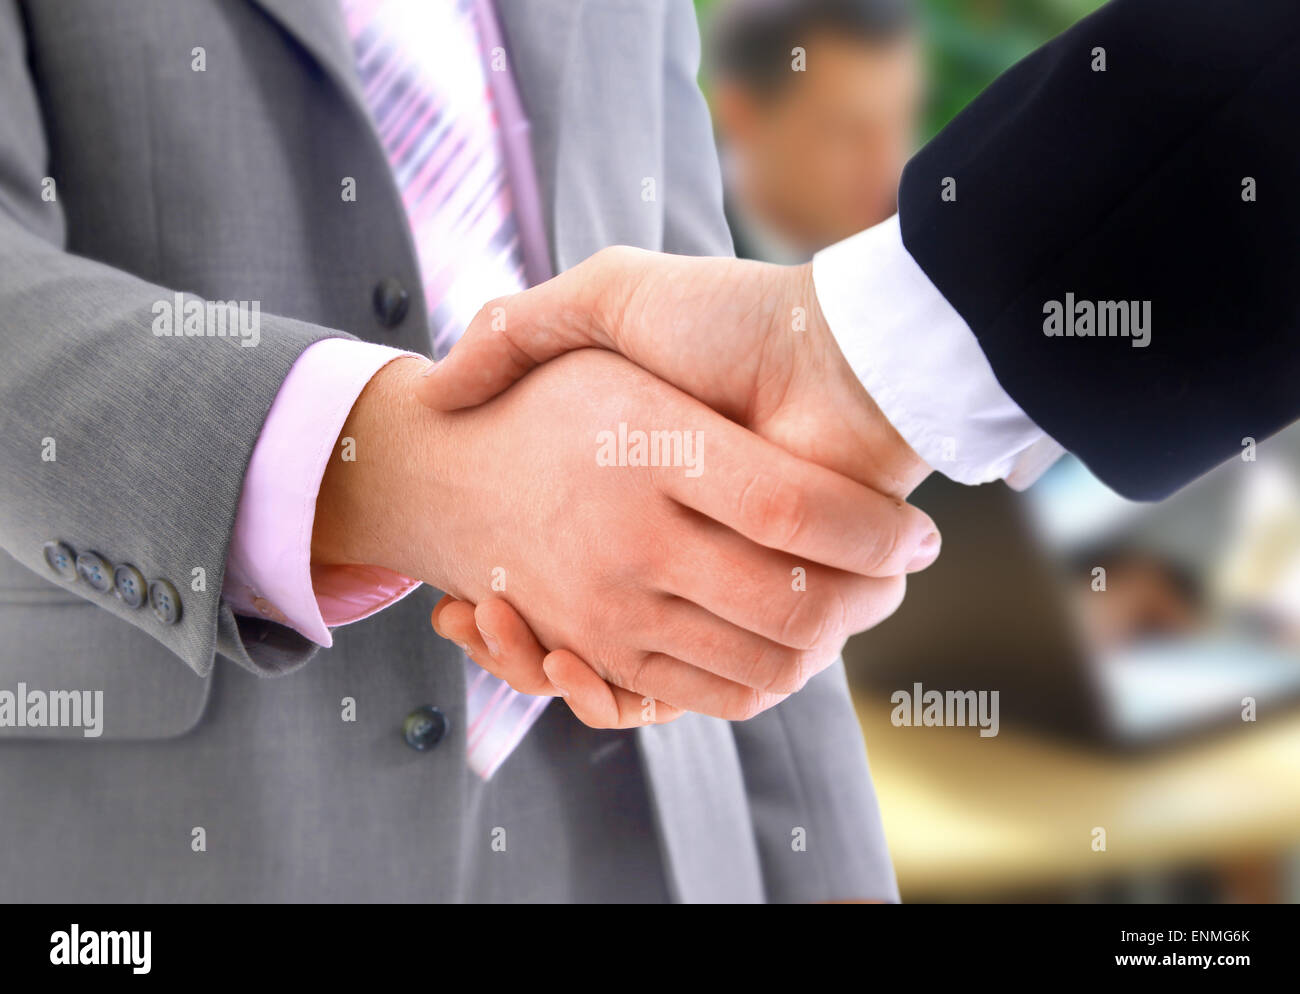 Communicate and handshake - Stock Image